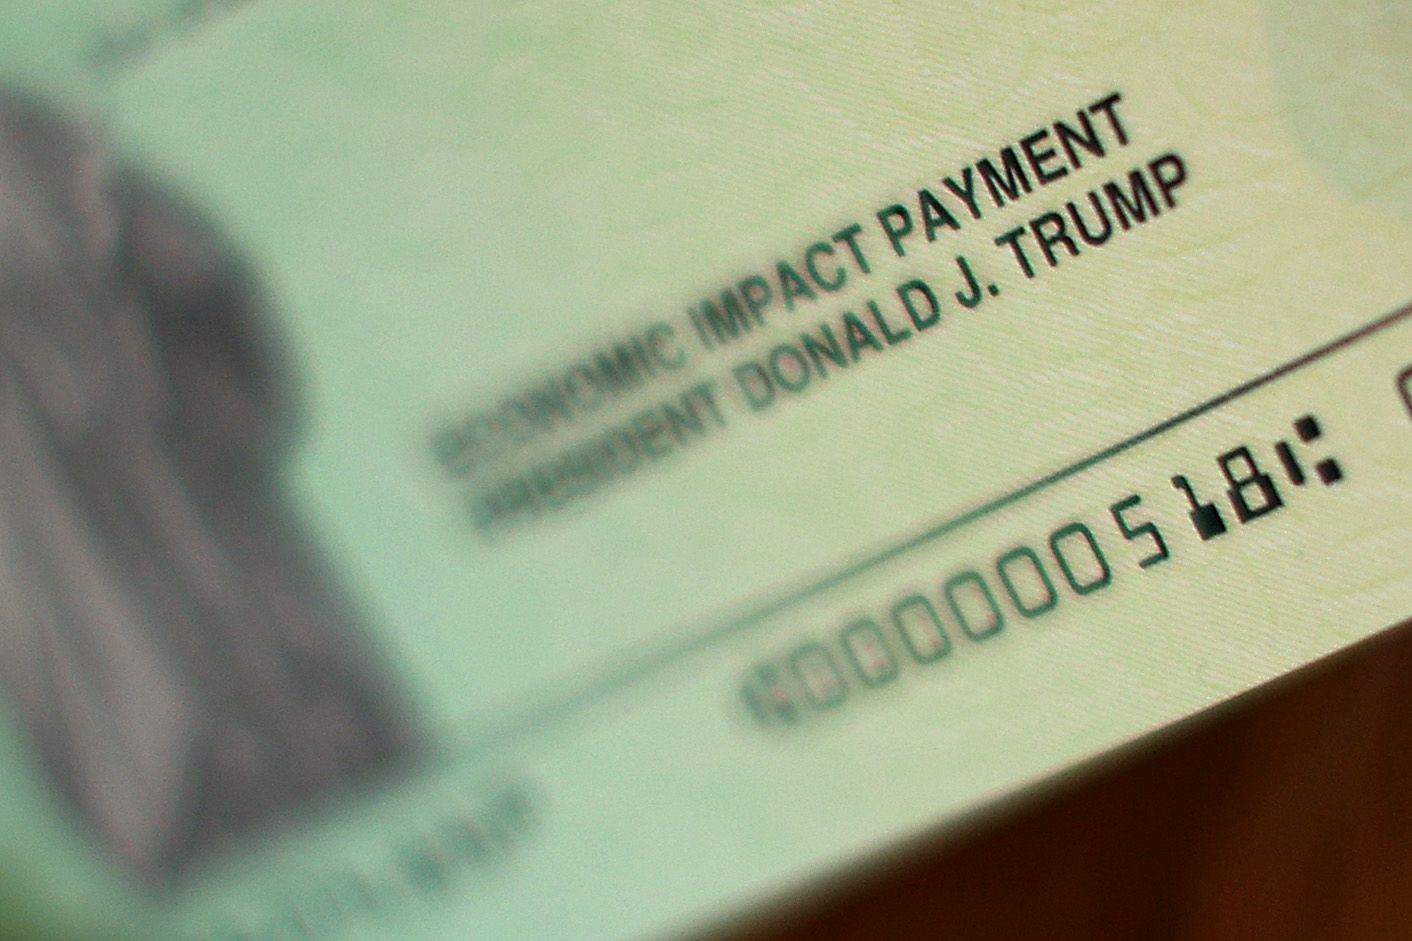 Who will the IRS send financial aid to this week and next?